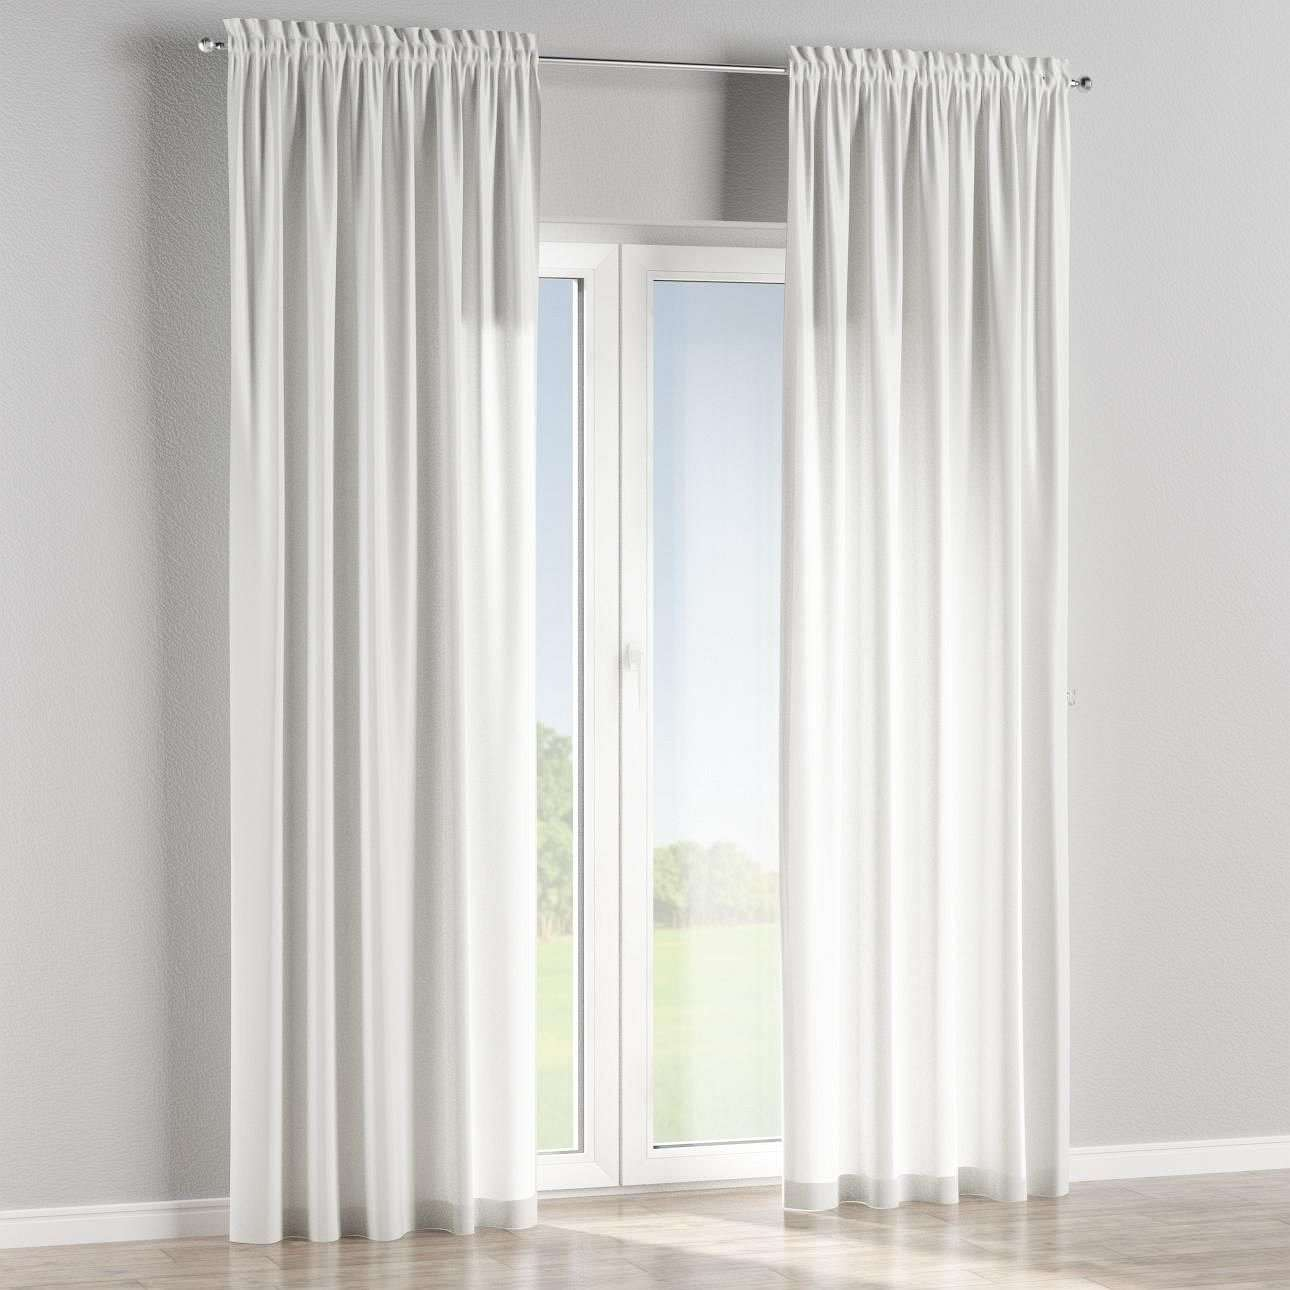 Slot and frill lined curtains in collection SALE, fabric: 411-01